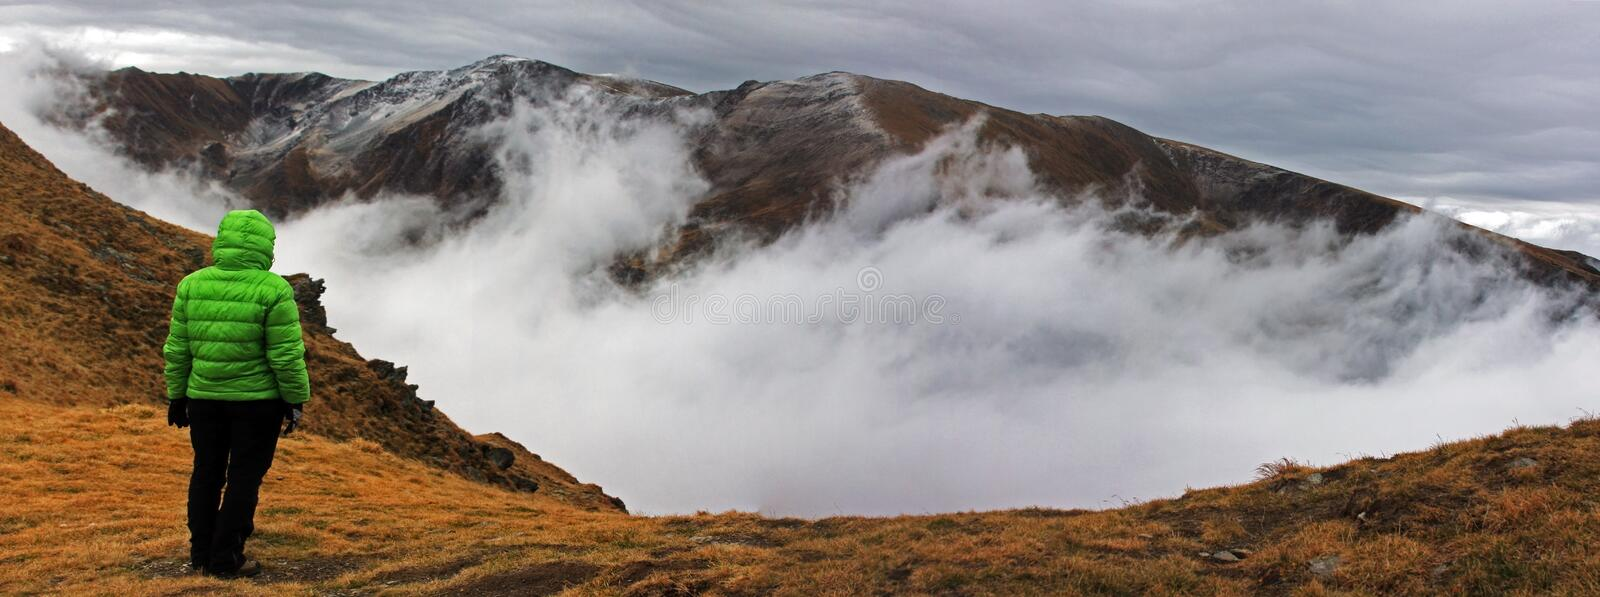 Girl watching the fog rising from the valley royalty free stock image